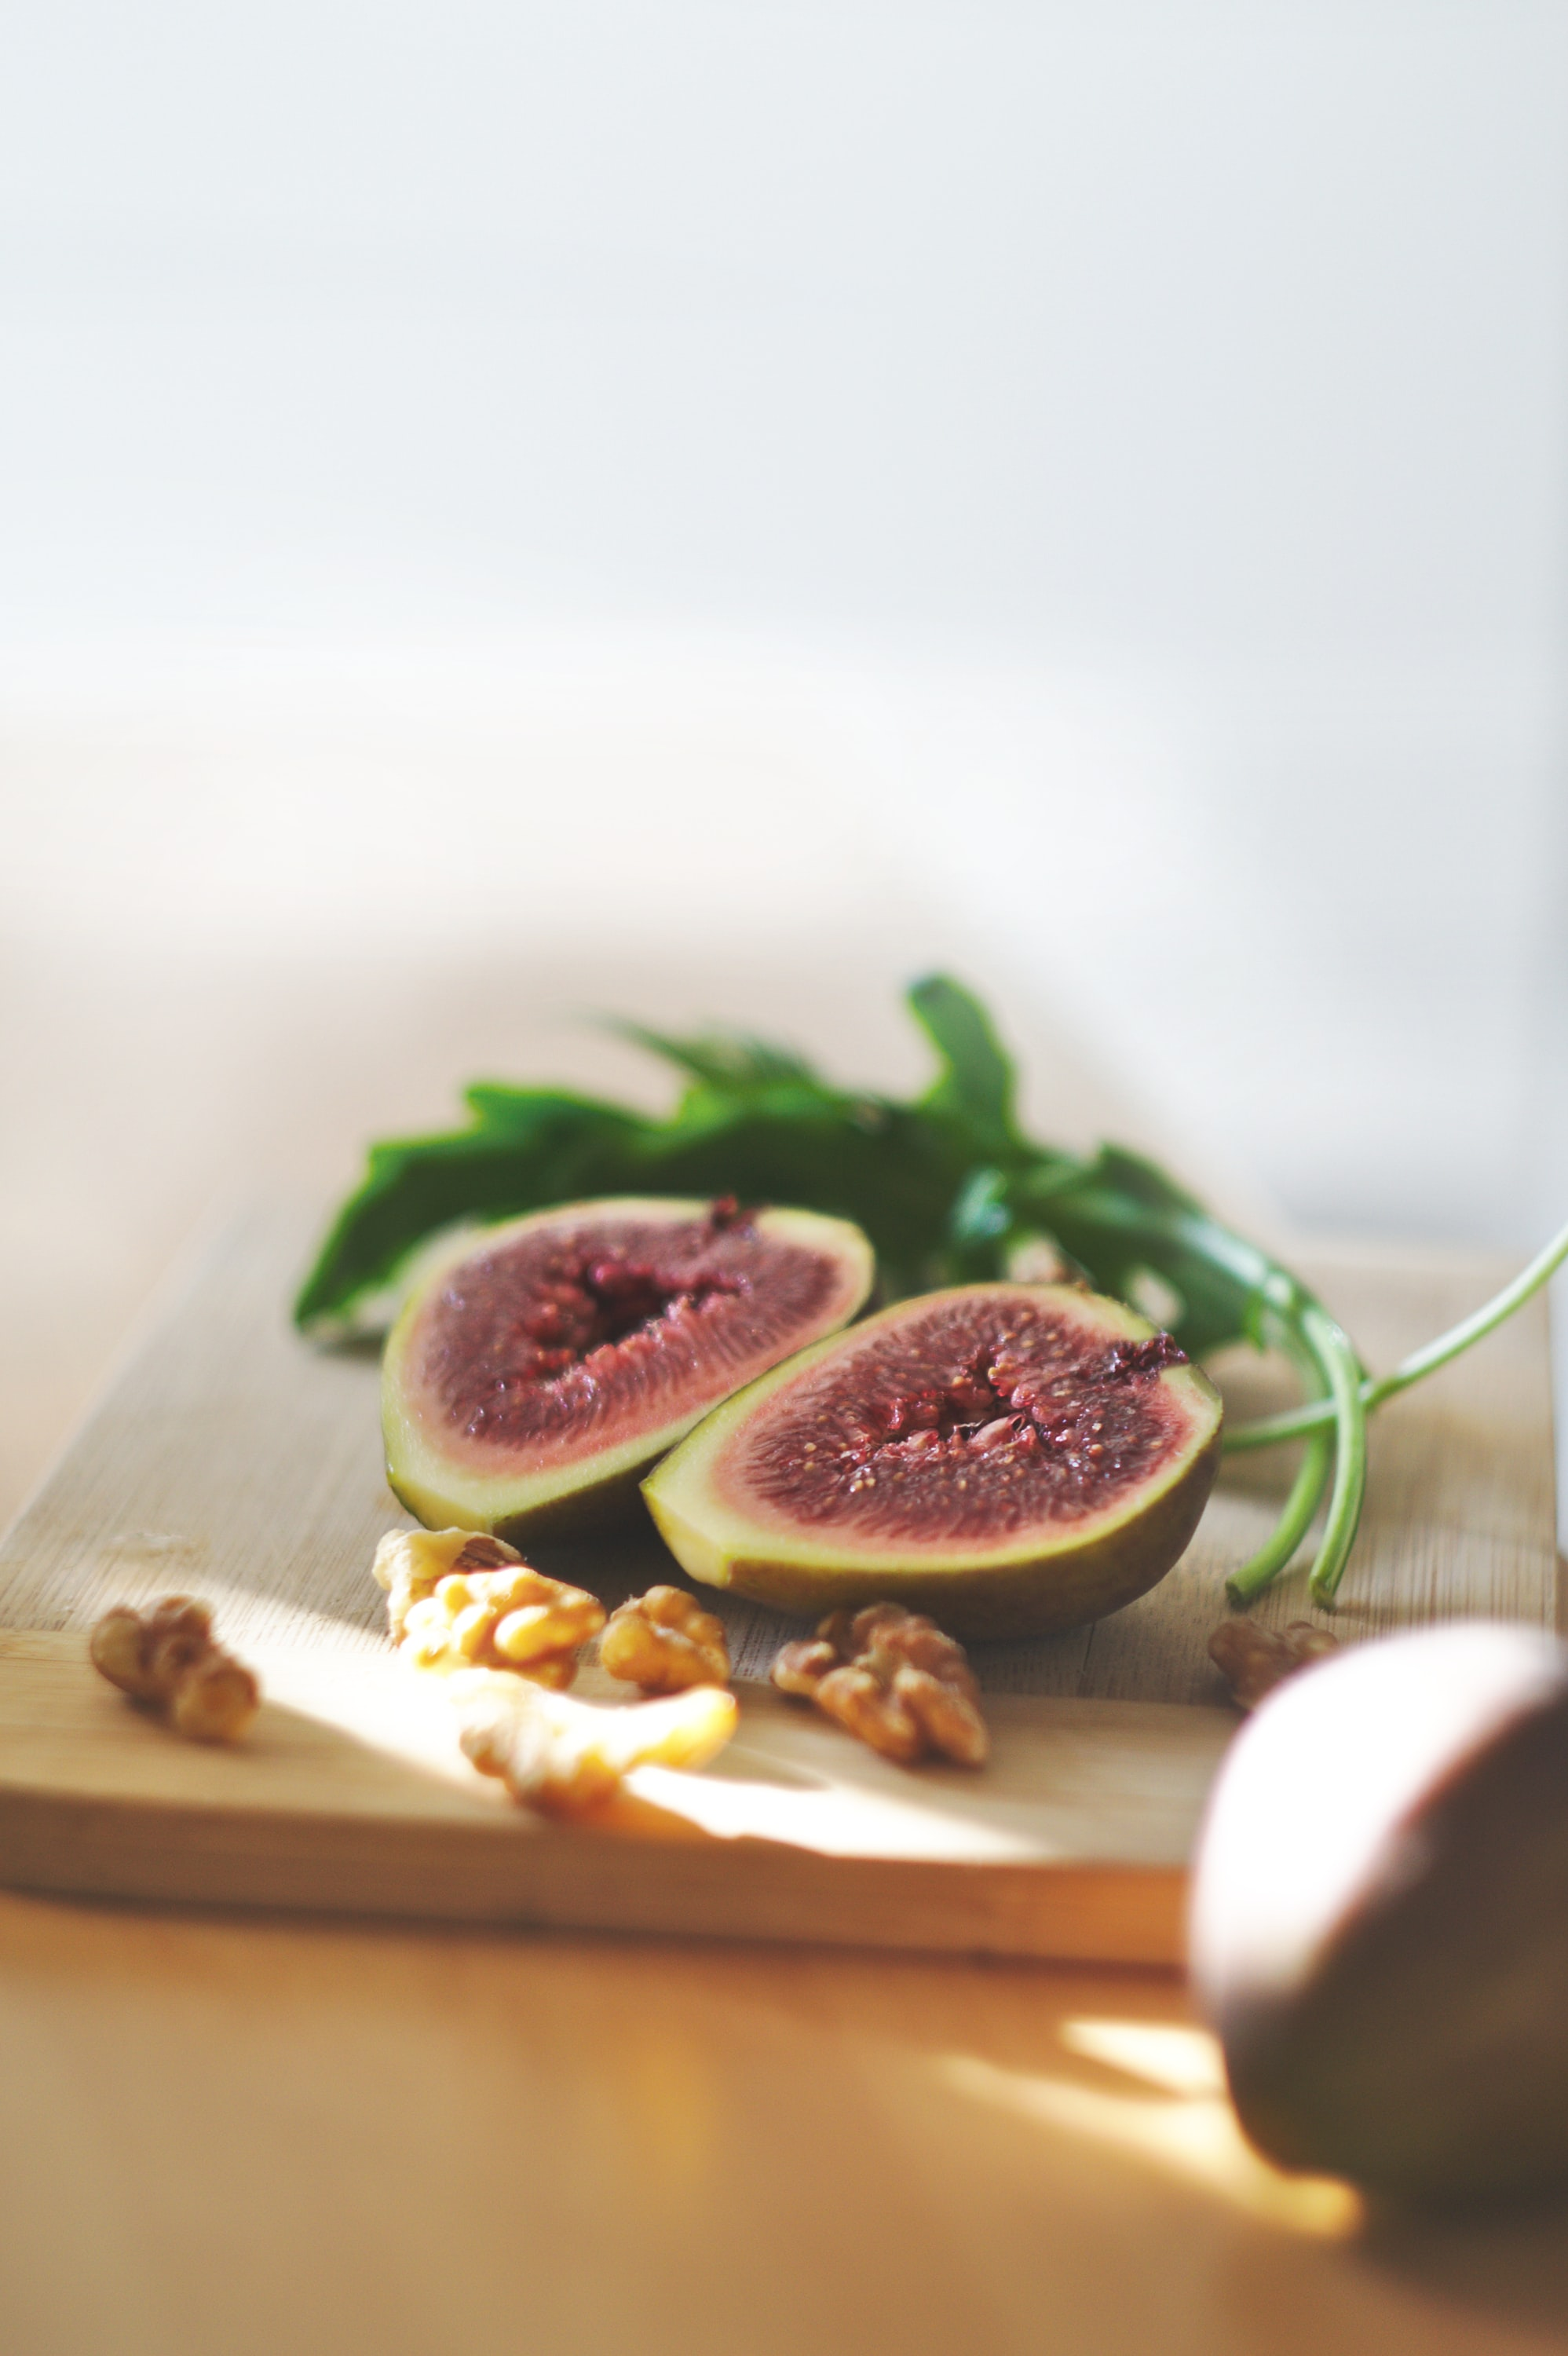 Cutting board with a fig fruit cut in half, a sprig of arugula, and walnuts